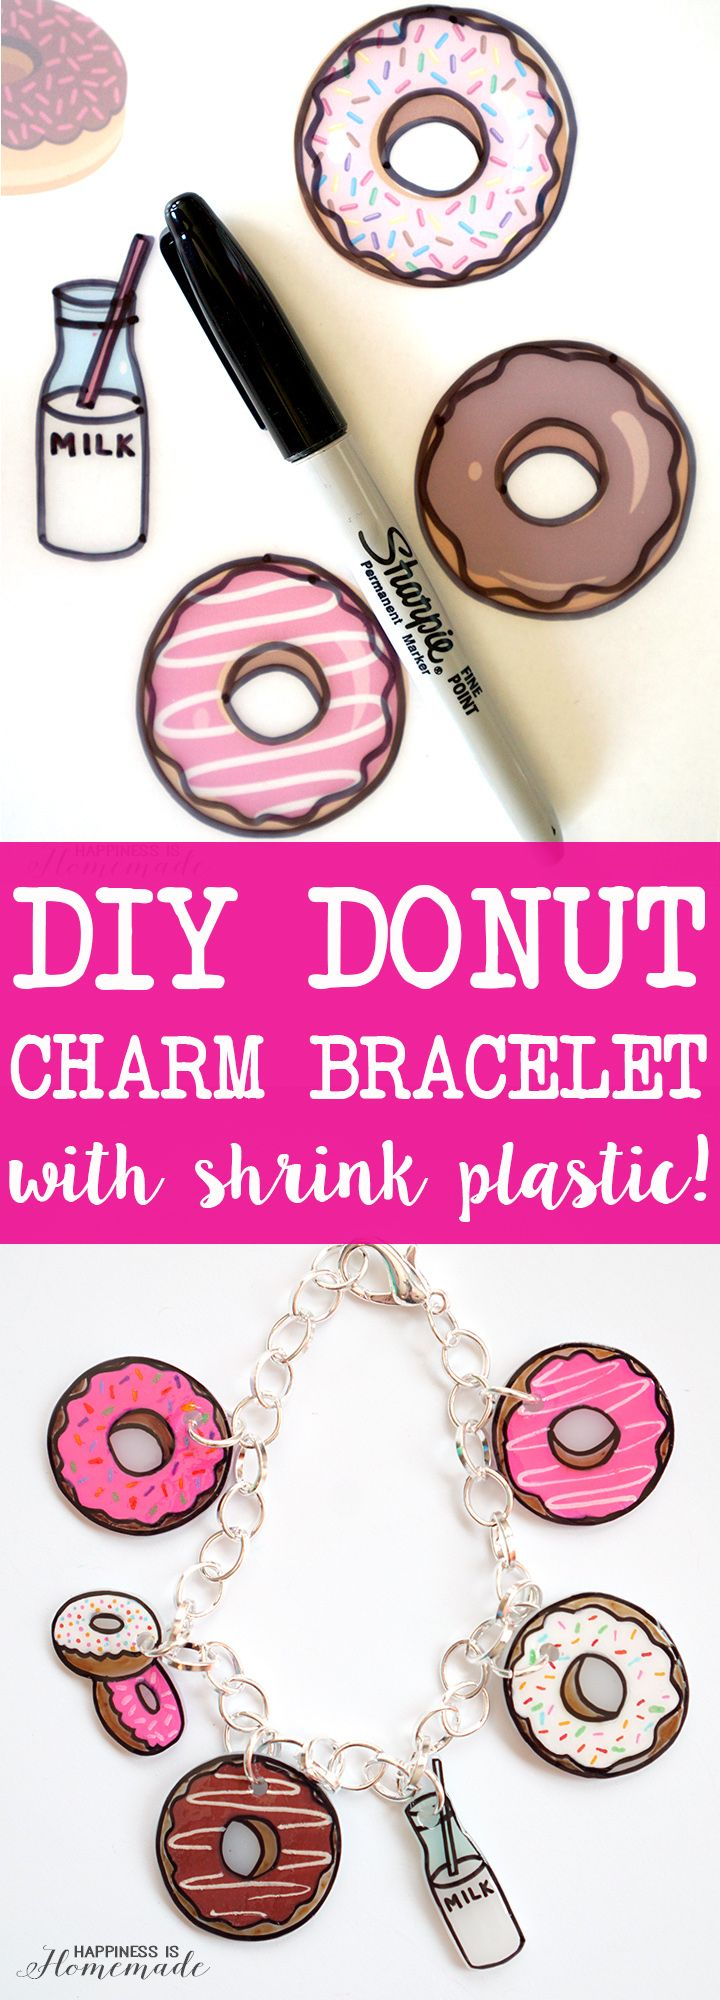 DIY Donut Charm Bracelet with Shrink Plastic